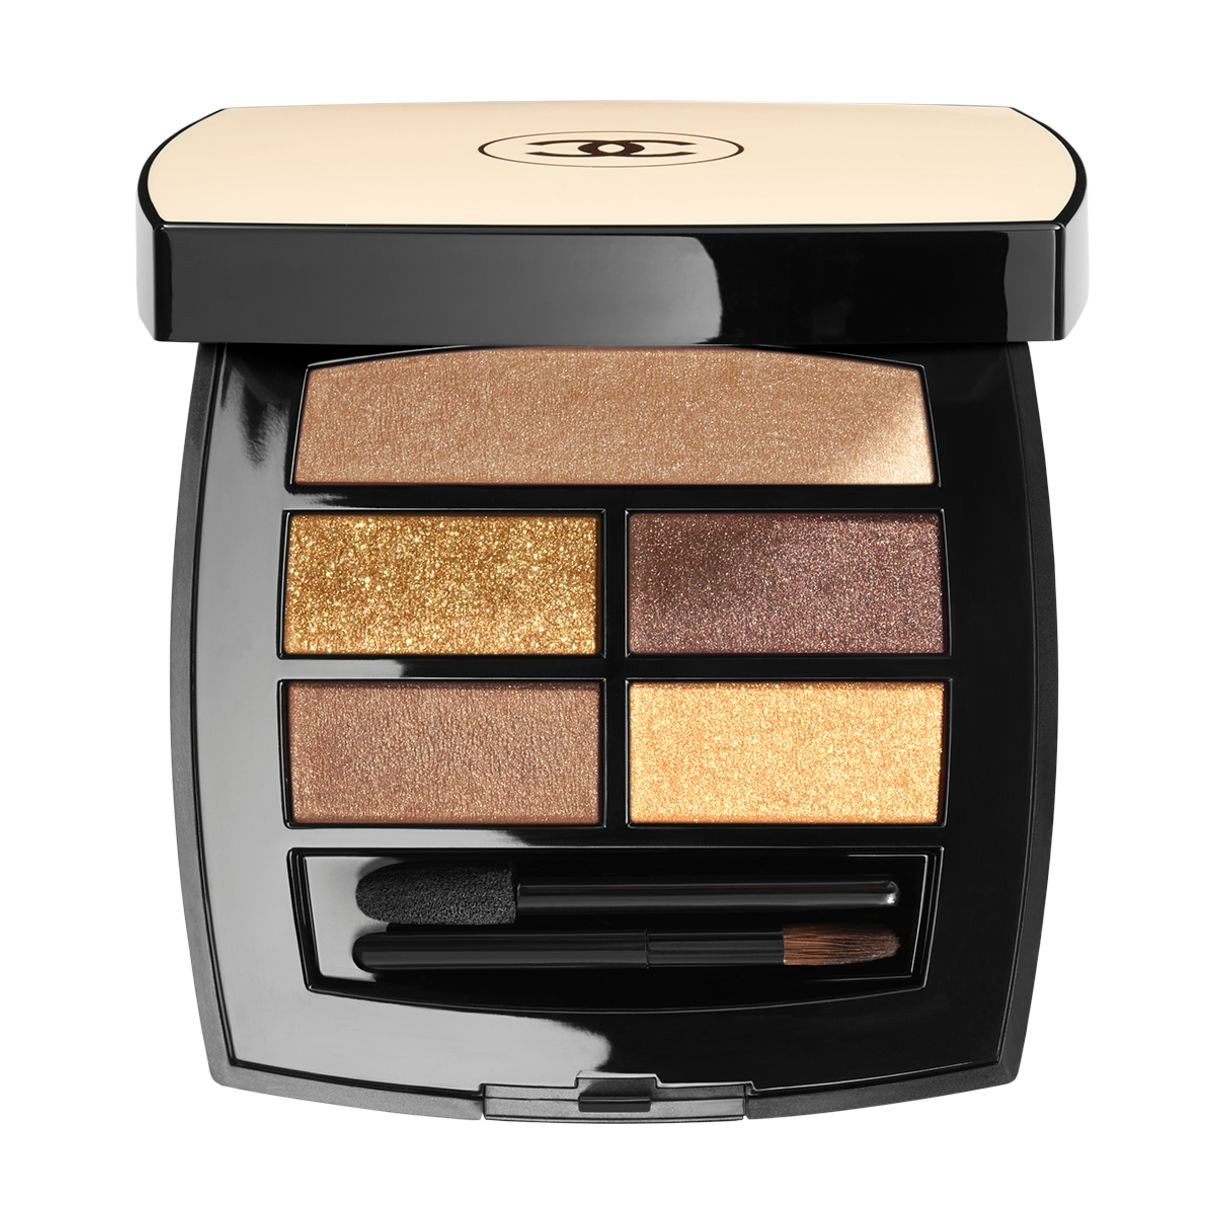 LES BEIGES PALETTE REGARD BELLE MINE NATURELLE 4.5g